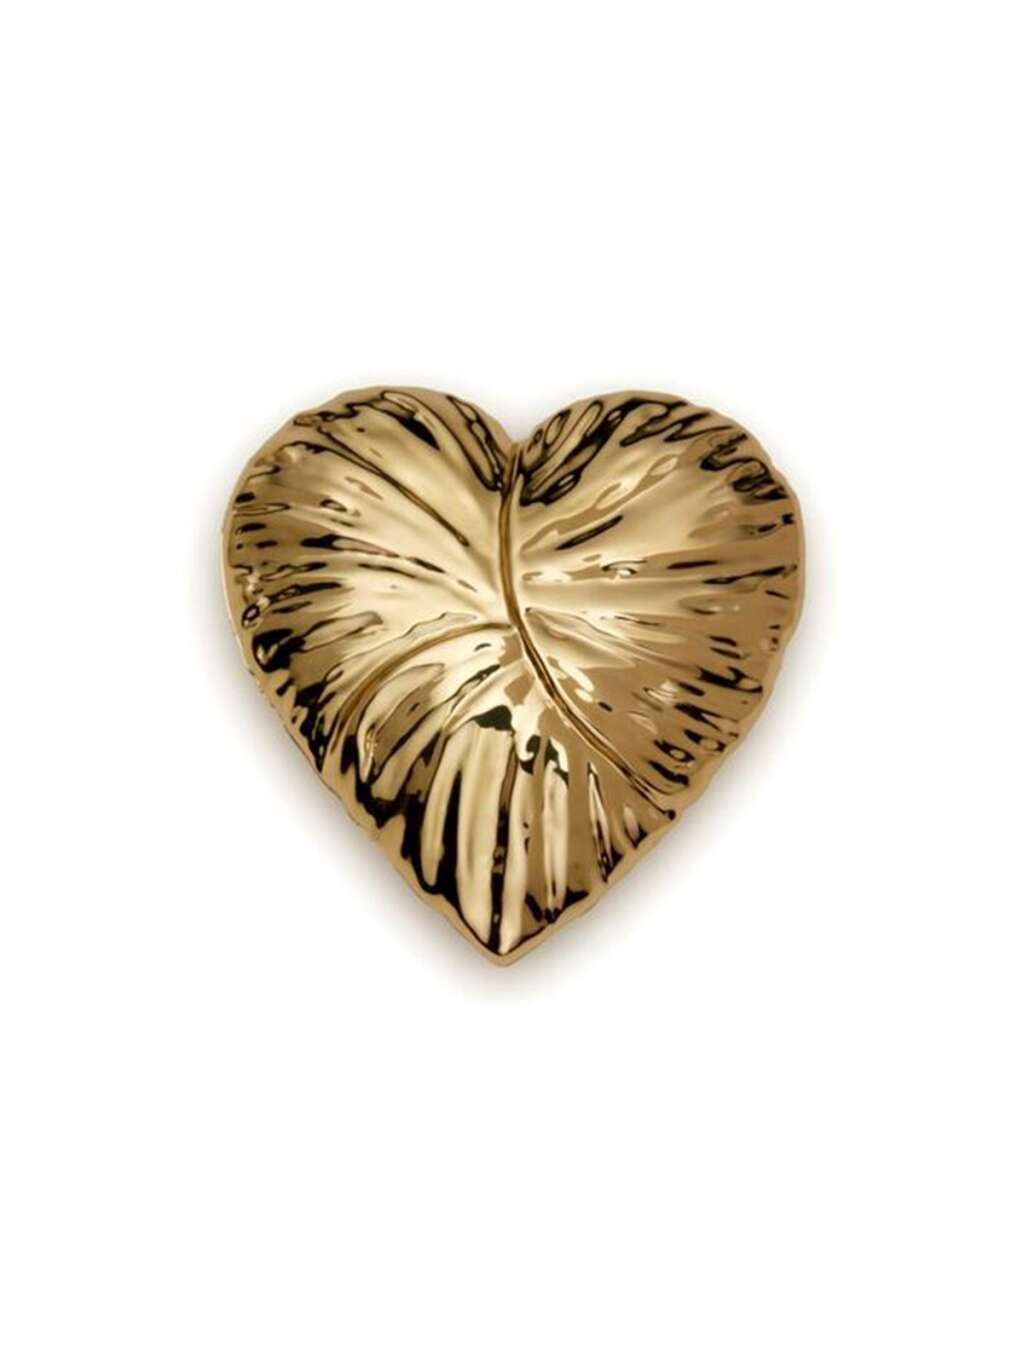 """This gold-colored, brass-plated Aerin Home Collection Ambroise Heart Gold measures 4"""" x 4"""" and 1.5"""" high. The design is inspired by a flower petal. $195. Gorsuch, 263 Gore Creek Drive, Vail. 970.476.2294. www.gorsuch.com 